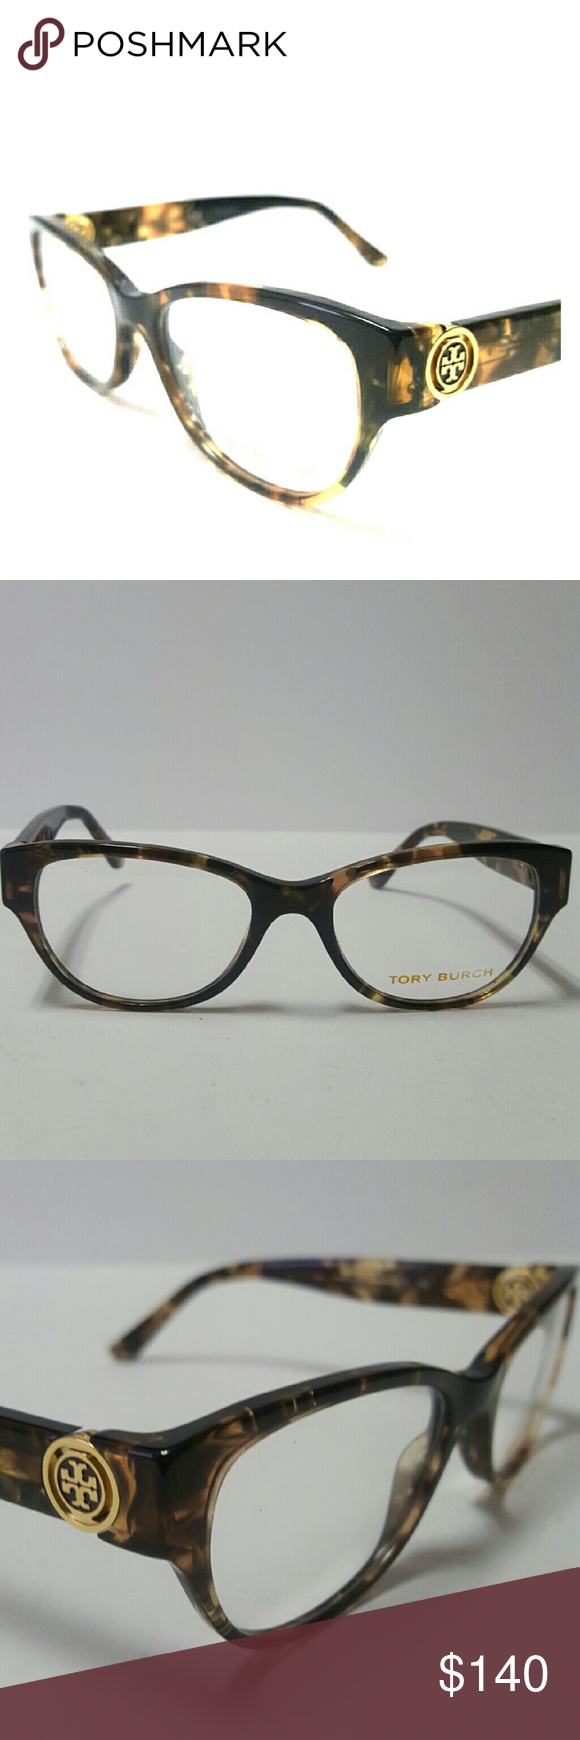 e800606a4c0 Tory Burch Eyeglasses New and authentic Tory Burch Eyeglasses Brown  tortoise frame 50-17-135 Includes original case Tory Burch Accessories  Glasses